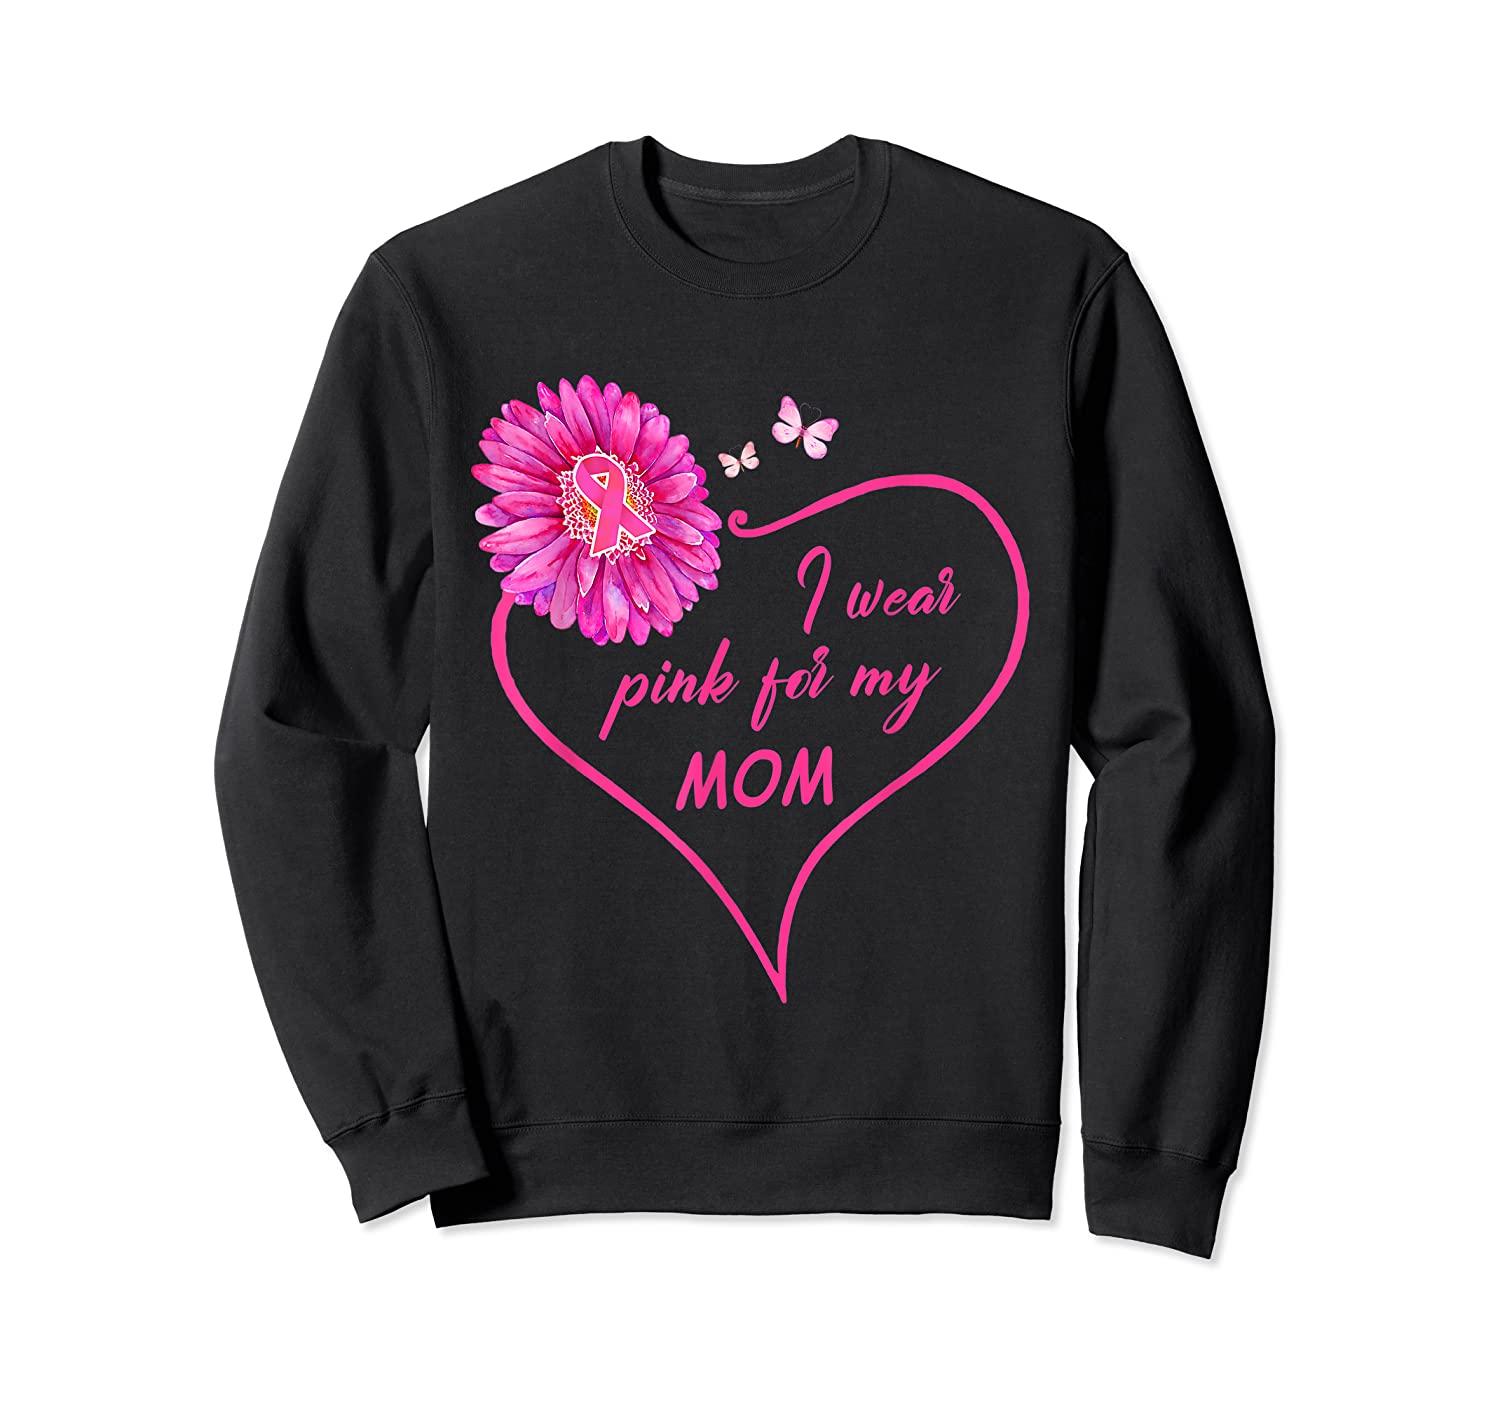 I Wear Pink For My Mom Daisy Flower Breast Cancer Awareness T Shirt Crewneck Sweater